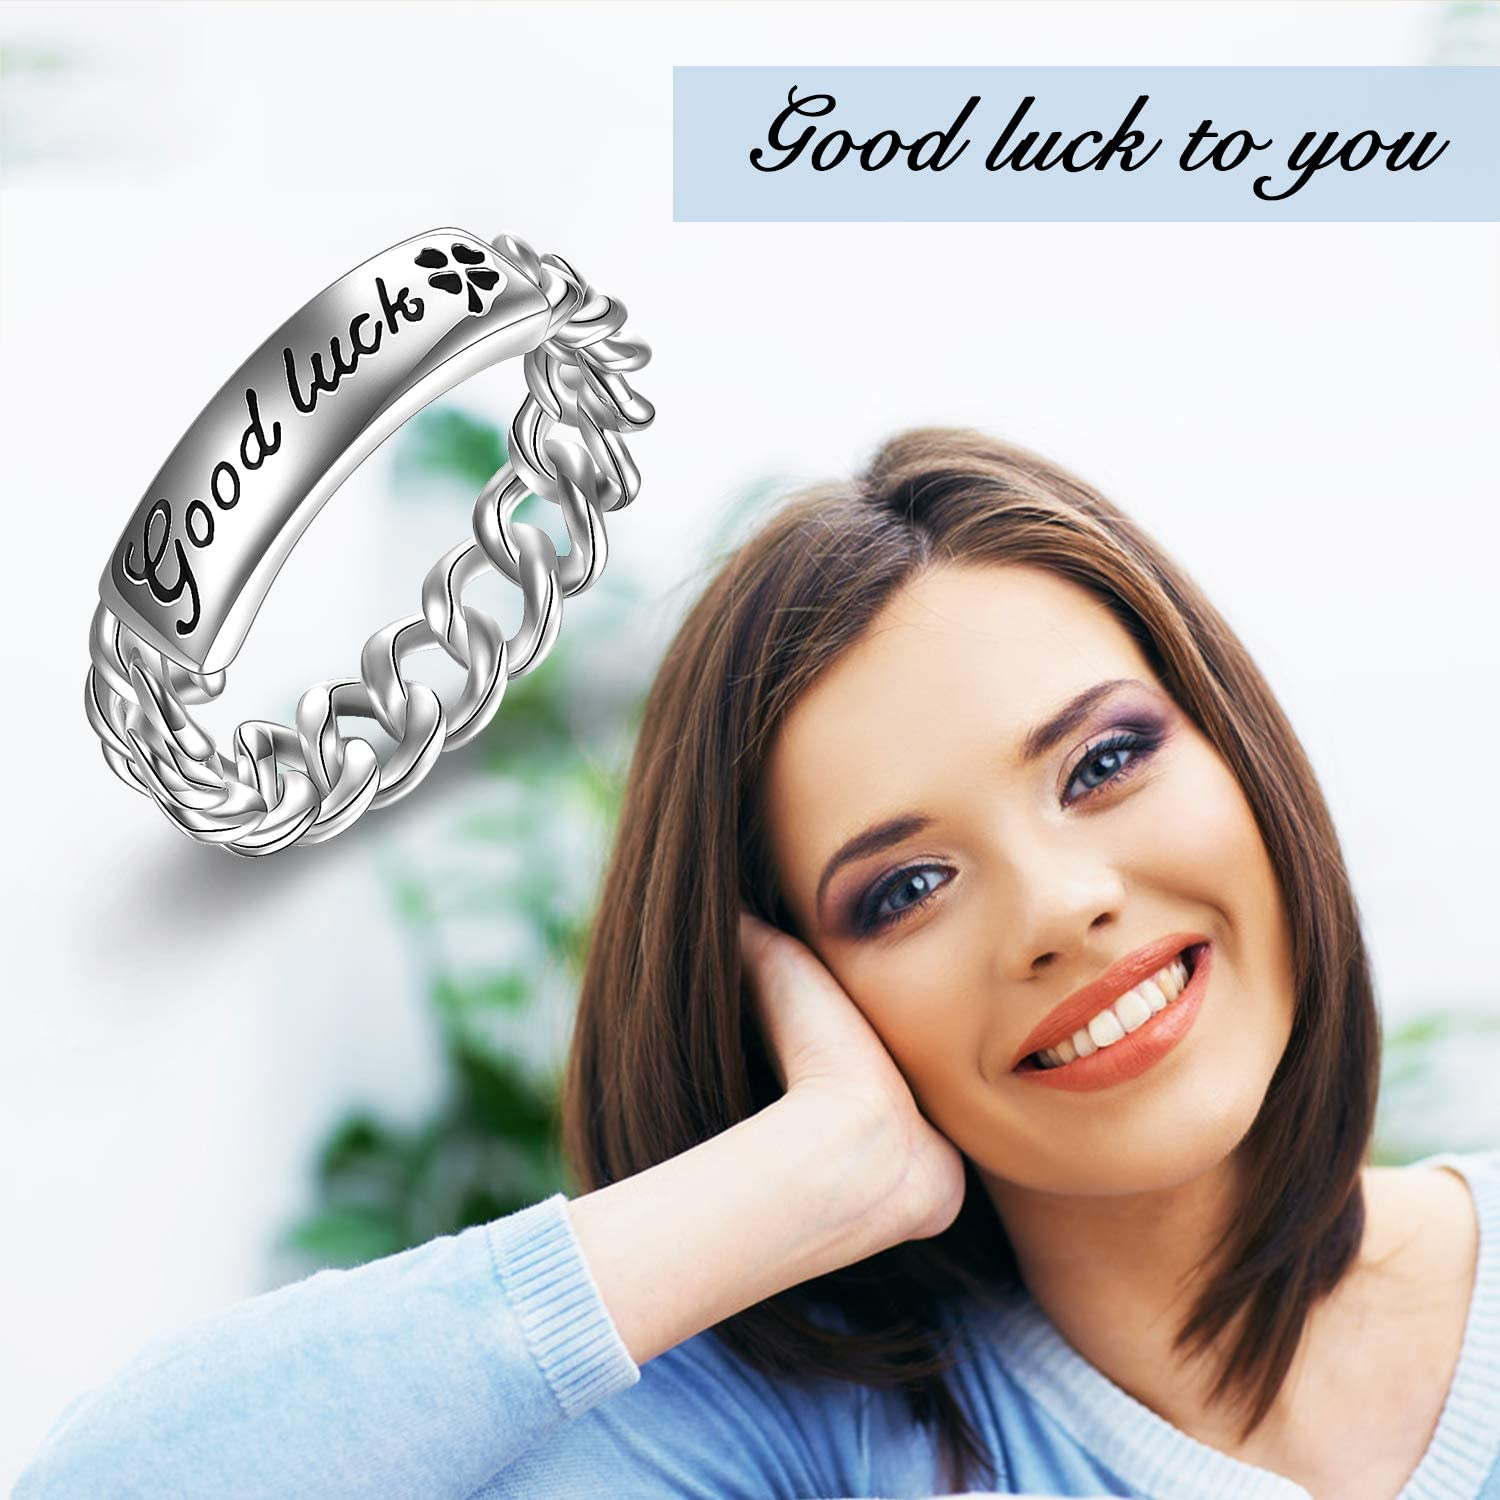 Sterling Silver Sturdy Cuban Knot Link Chain Engraved Good Luck Wedding Eternity Band Ring for Women Girls Men Boys Unisex